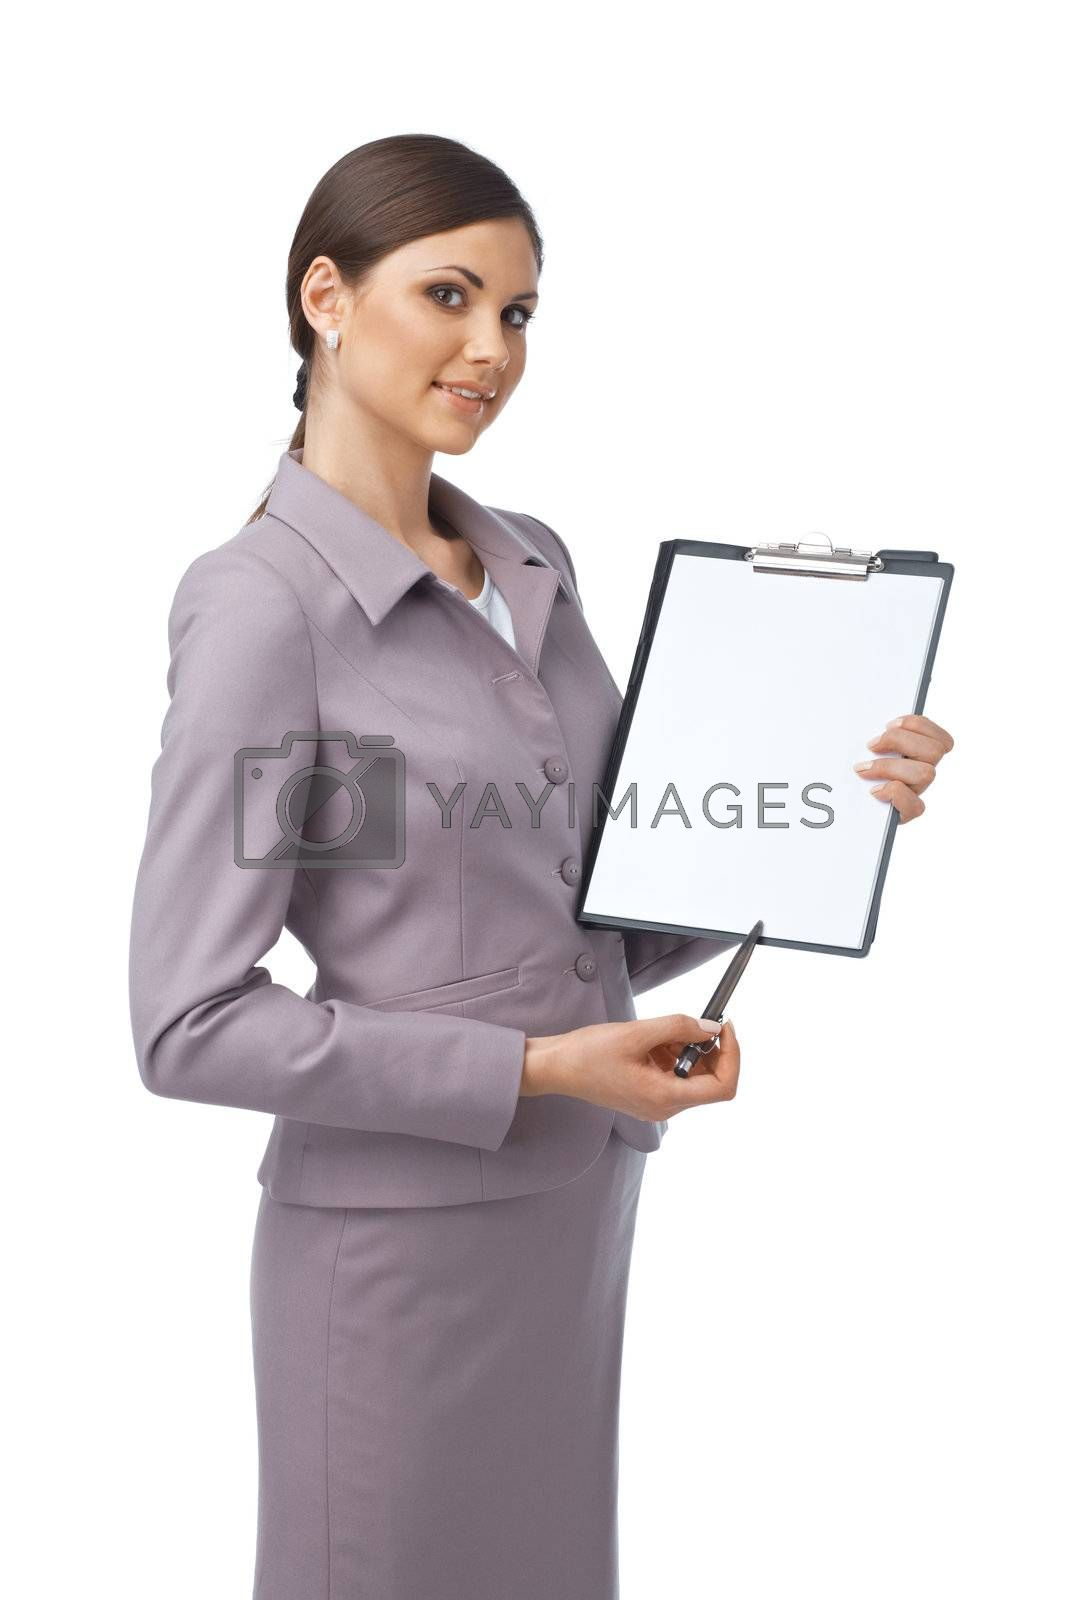 Portrait of a young business woman pointing with a pen on the paper she is holding